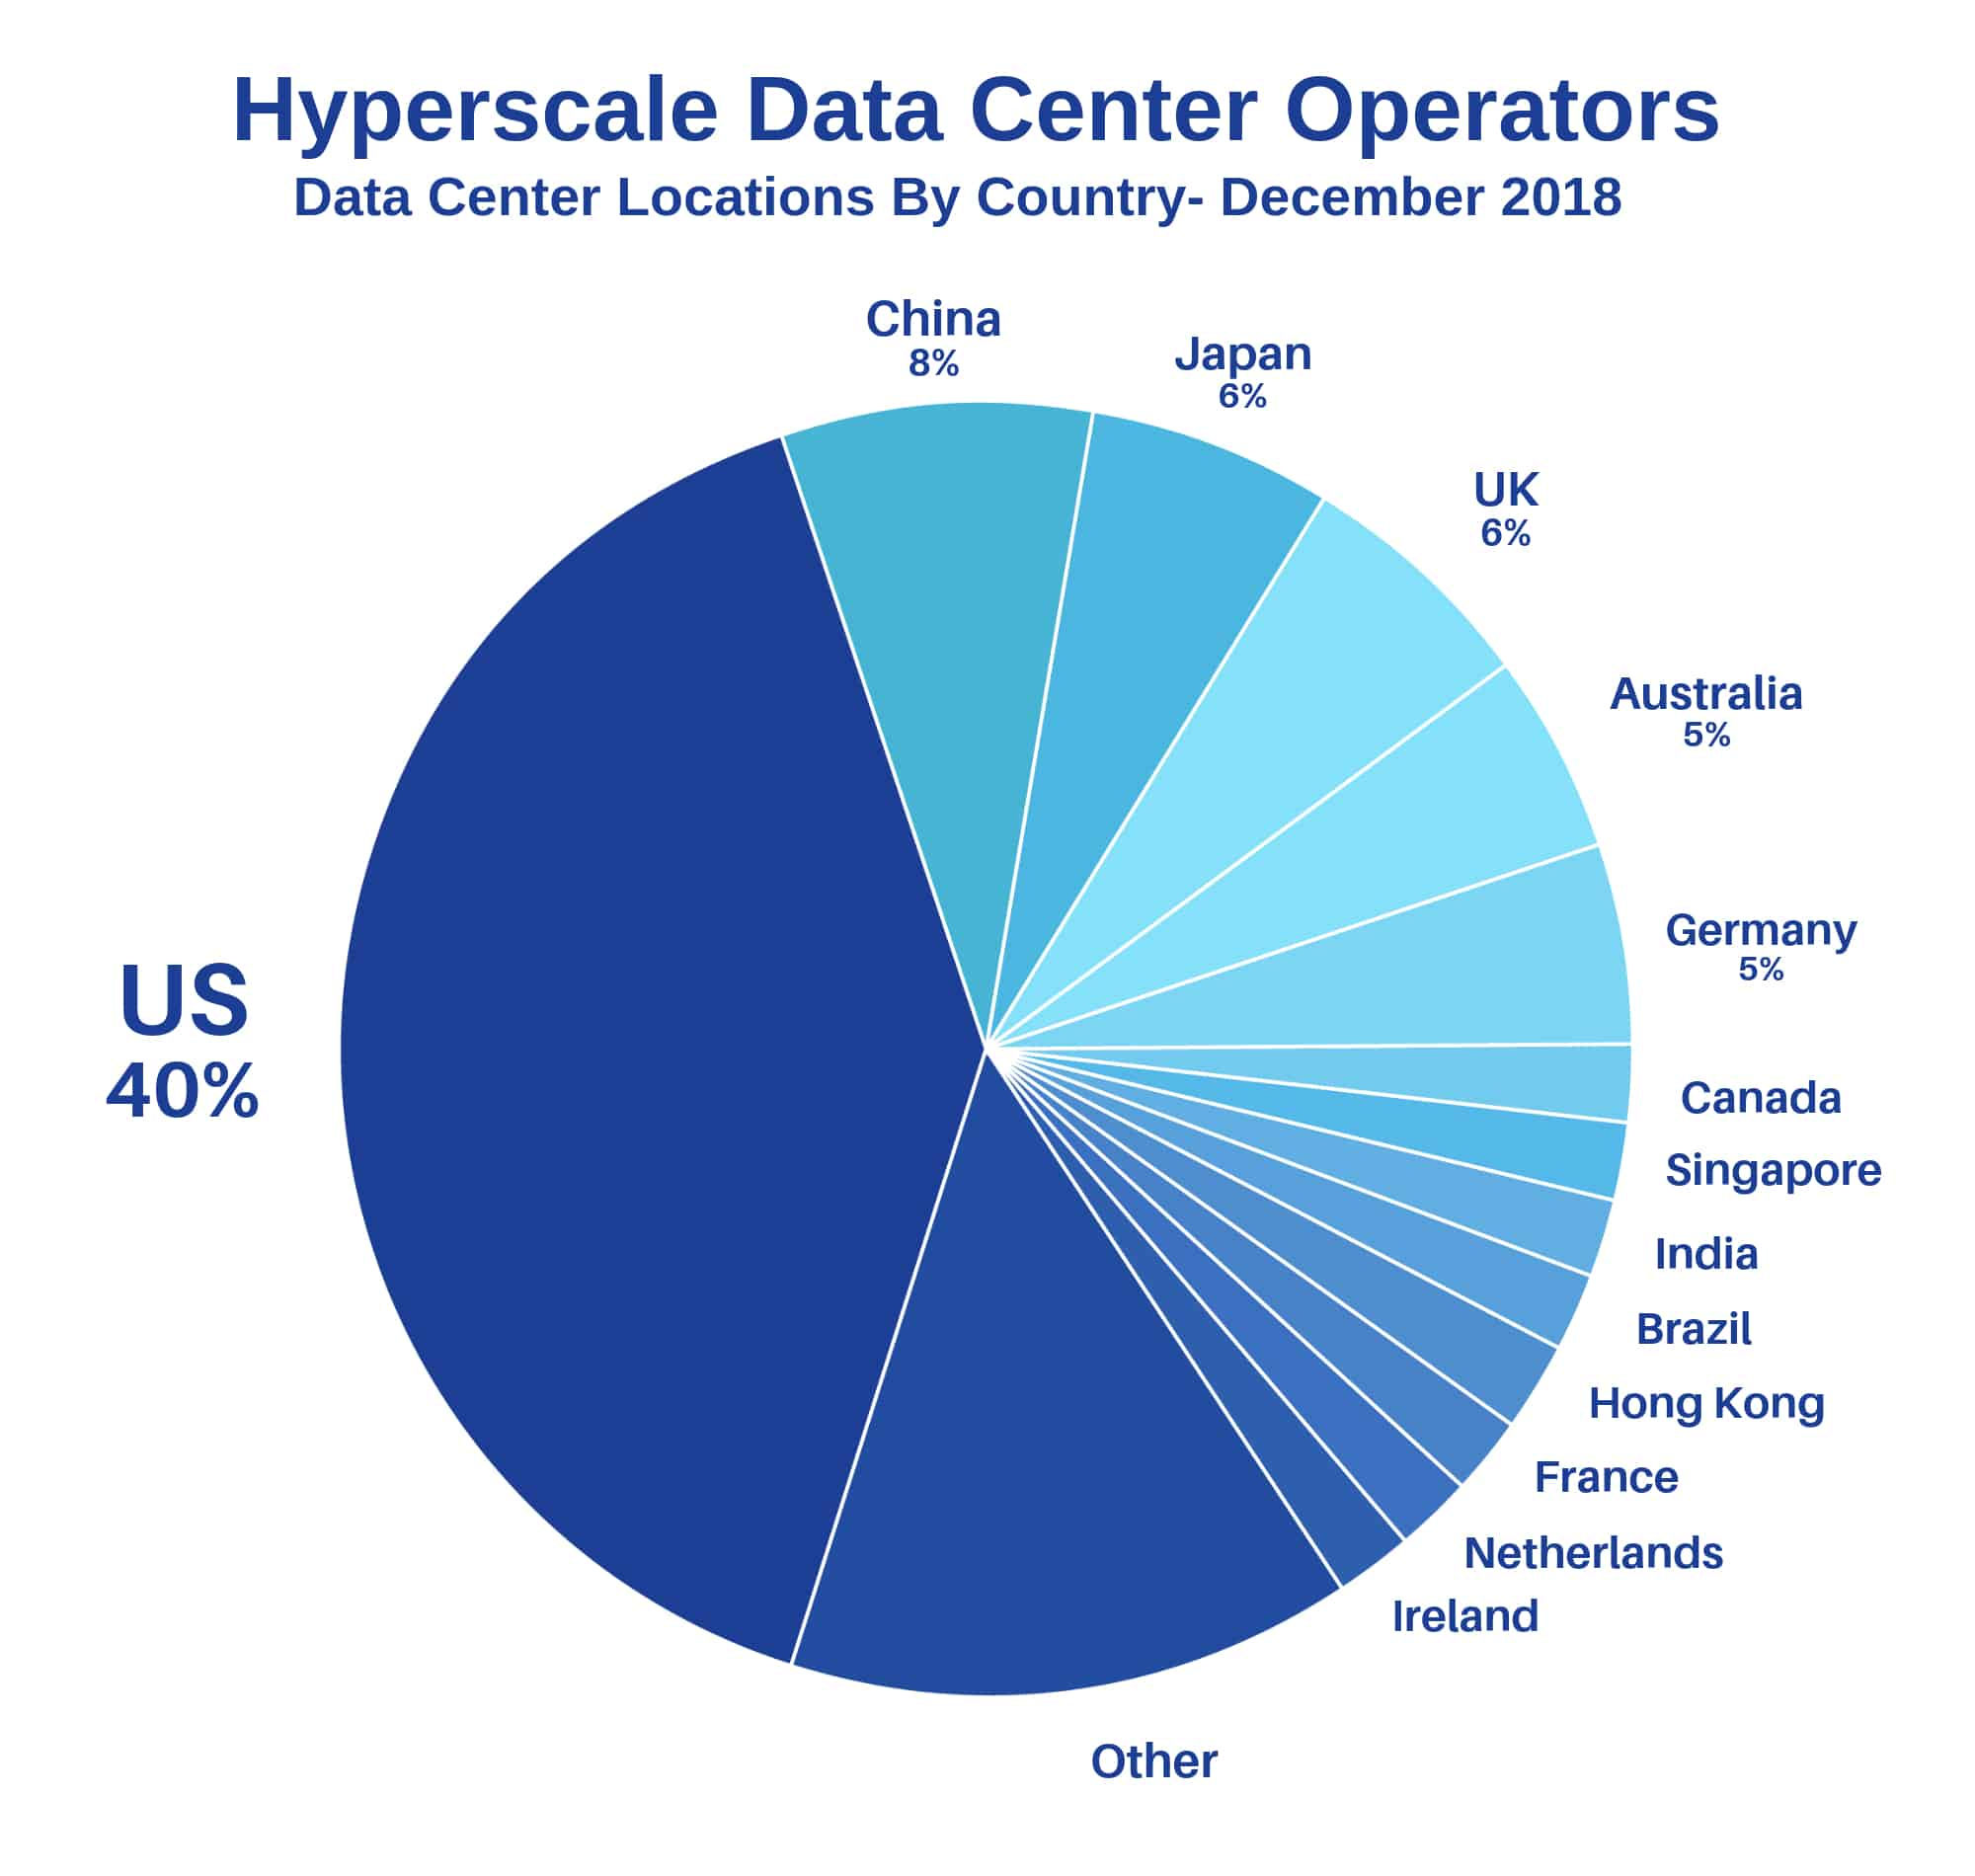 Pictured: a chart showing the data center locations, by country, of hyperscale data center operators in December 2018. The United States had 40% of the hyperscale data center operators worldwide, followed by China at 8%, Japan at 6%, and the United Kingdom at 6%.